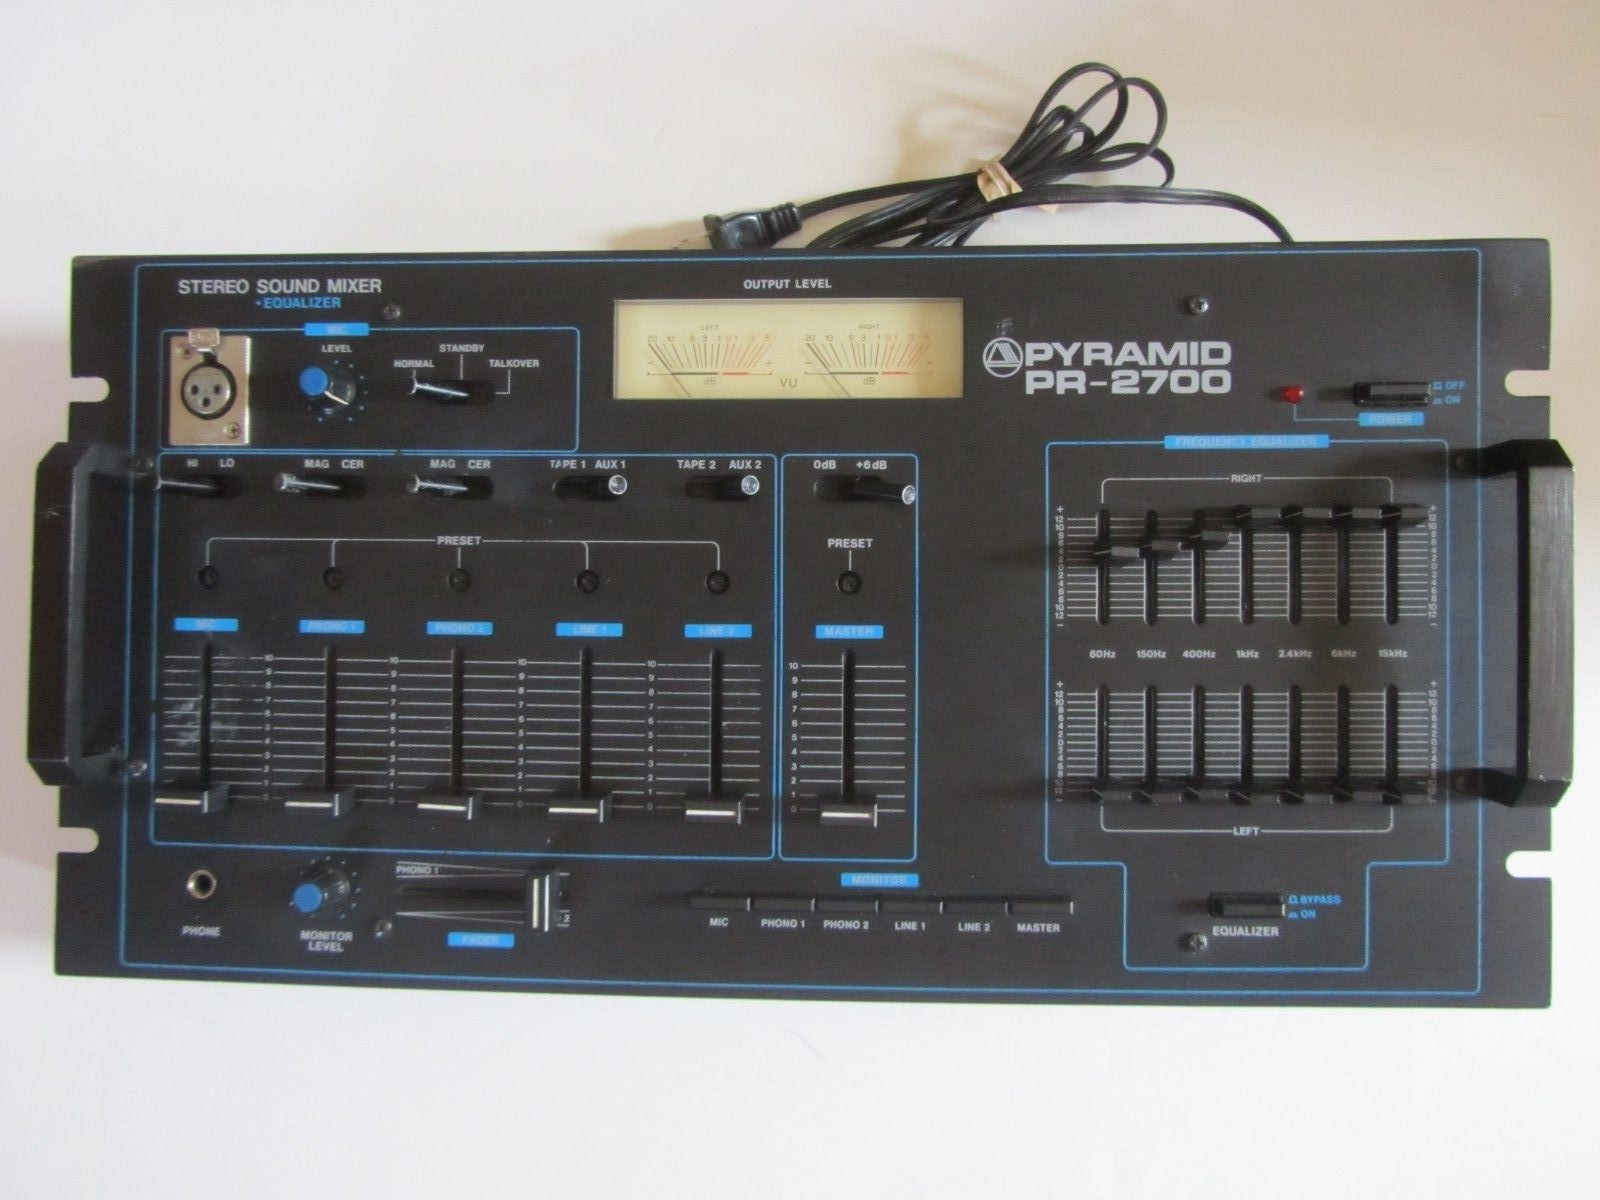 Pyramid PR-2700. My High School Mixer